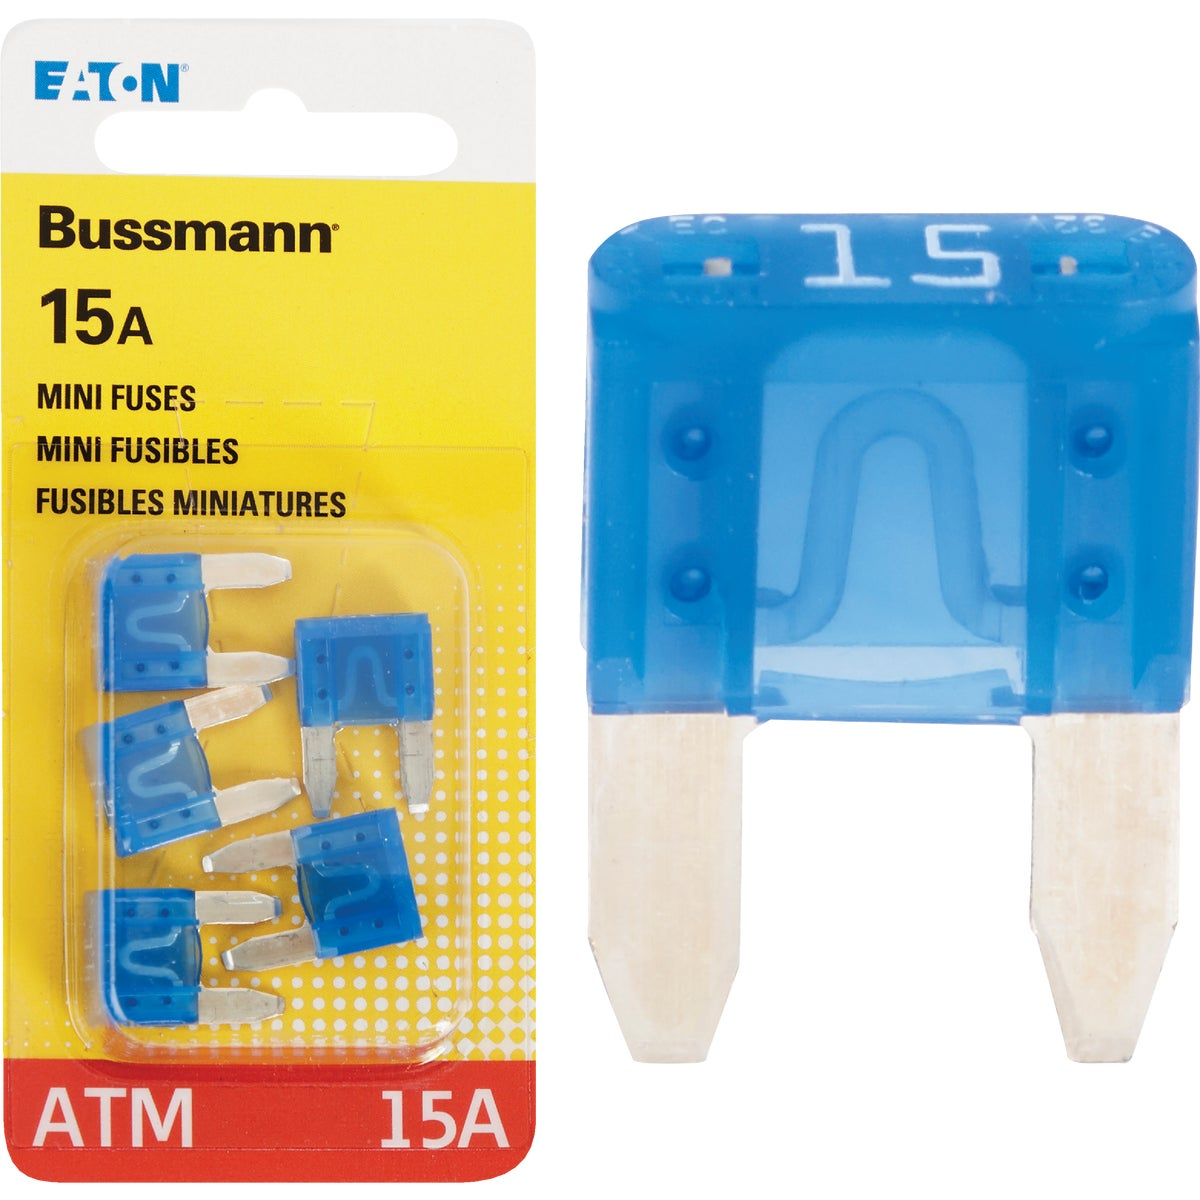 15AMP MINI FUSE - BP/ATM-15-RP by Bussmann Cooper